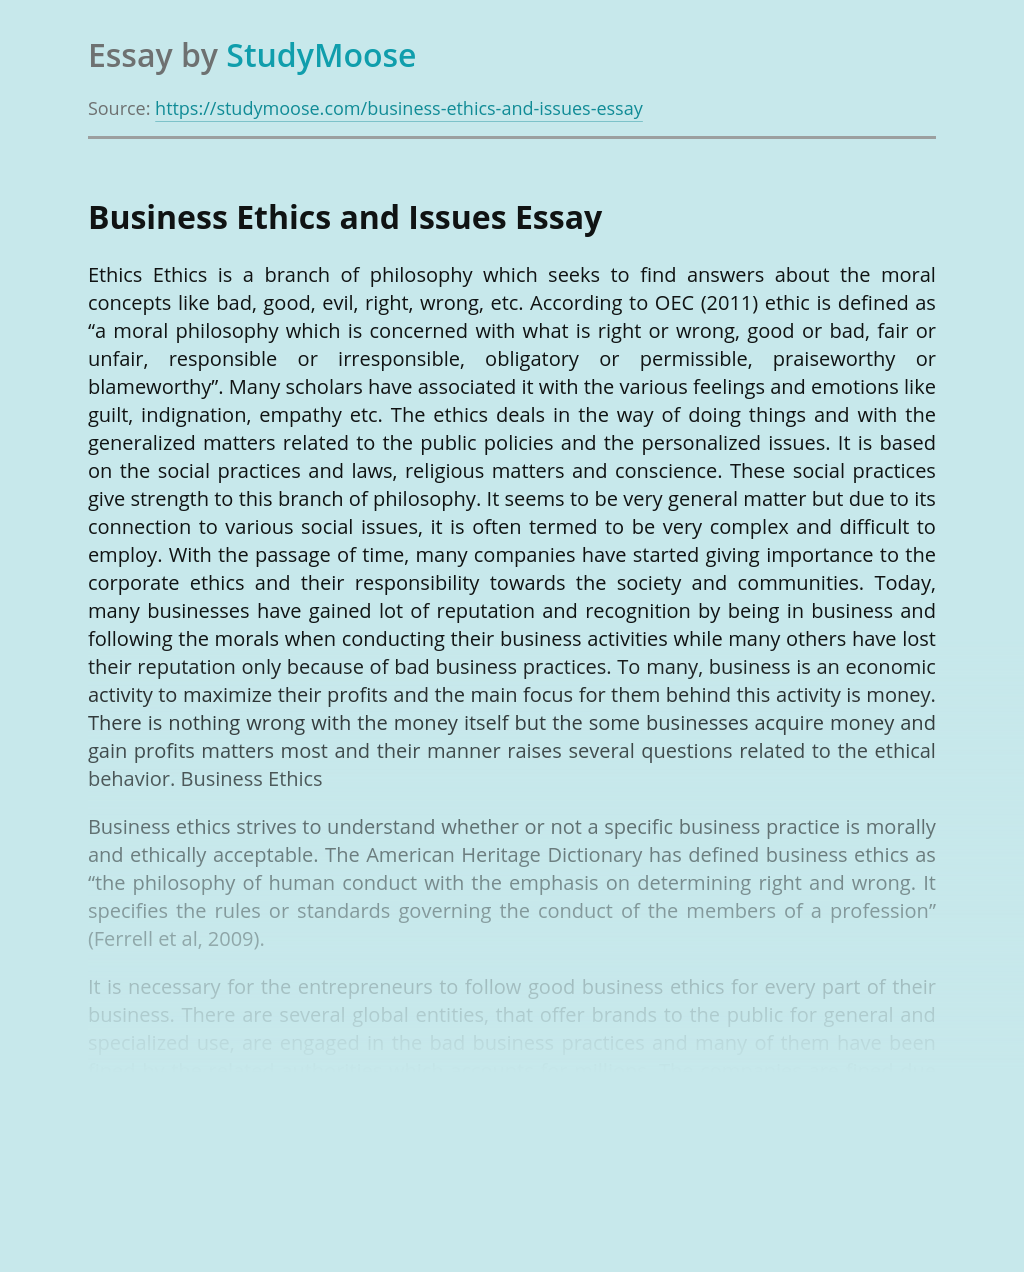 Business Ethics and Issues